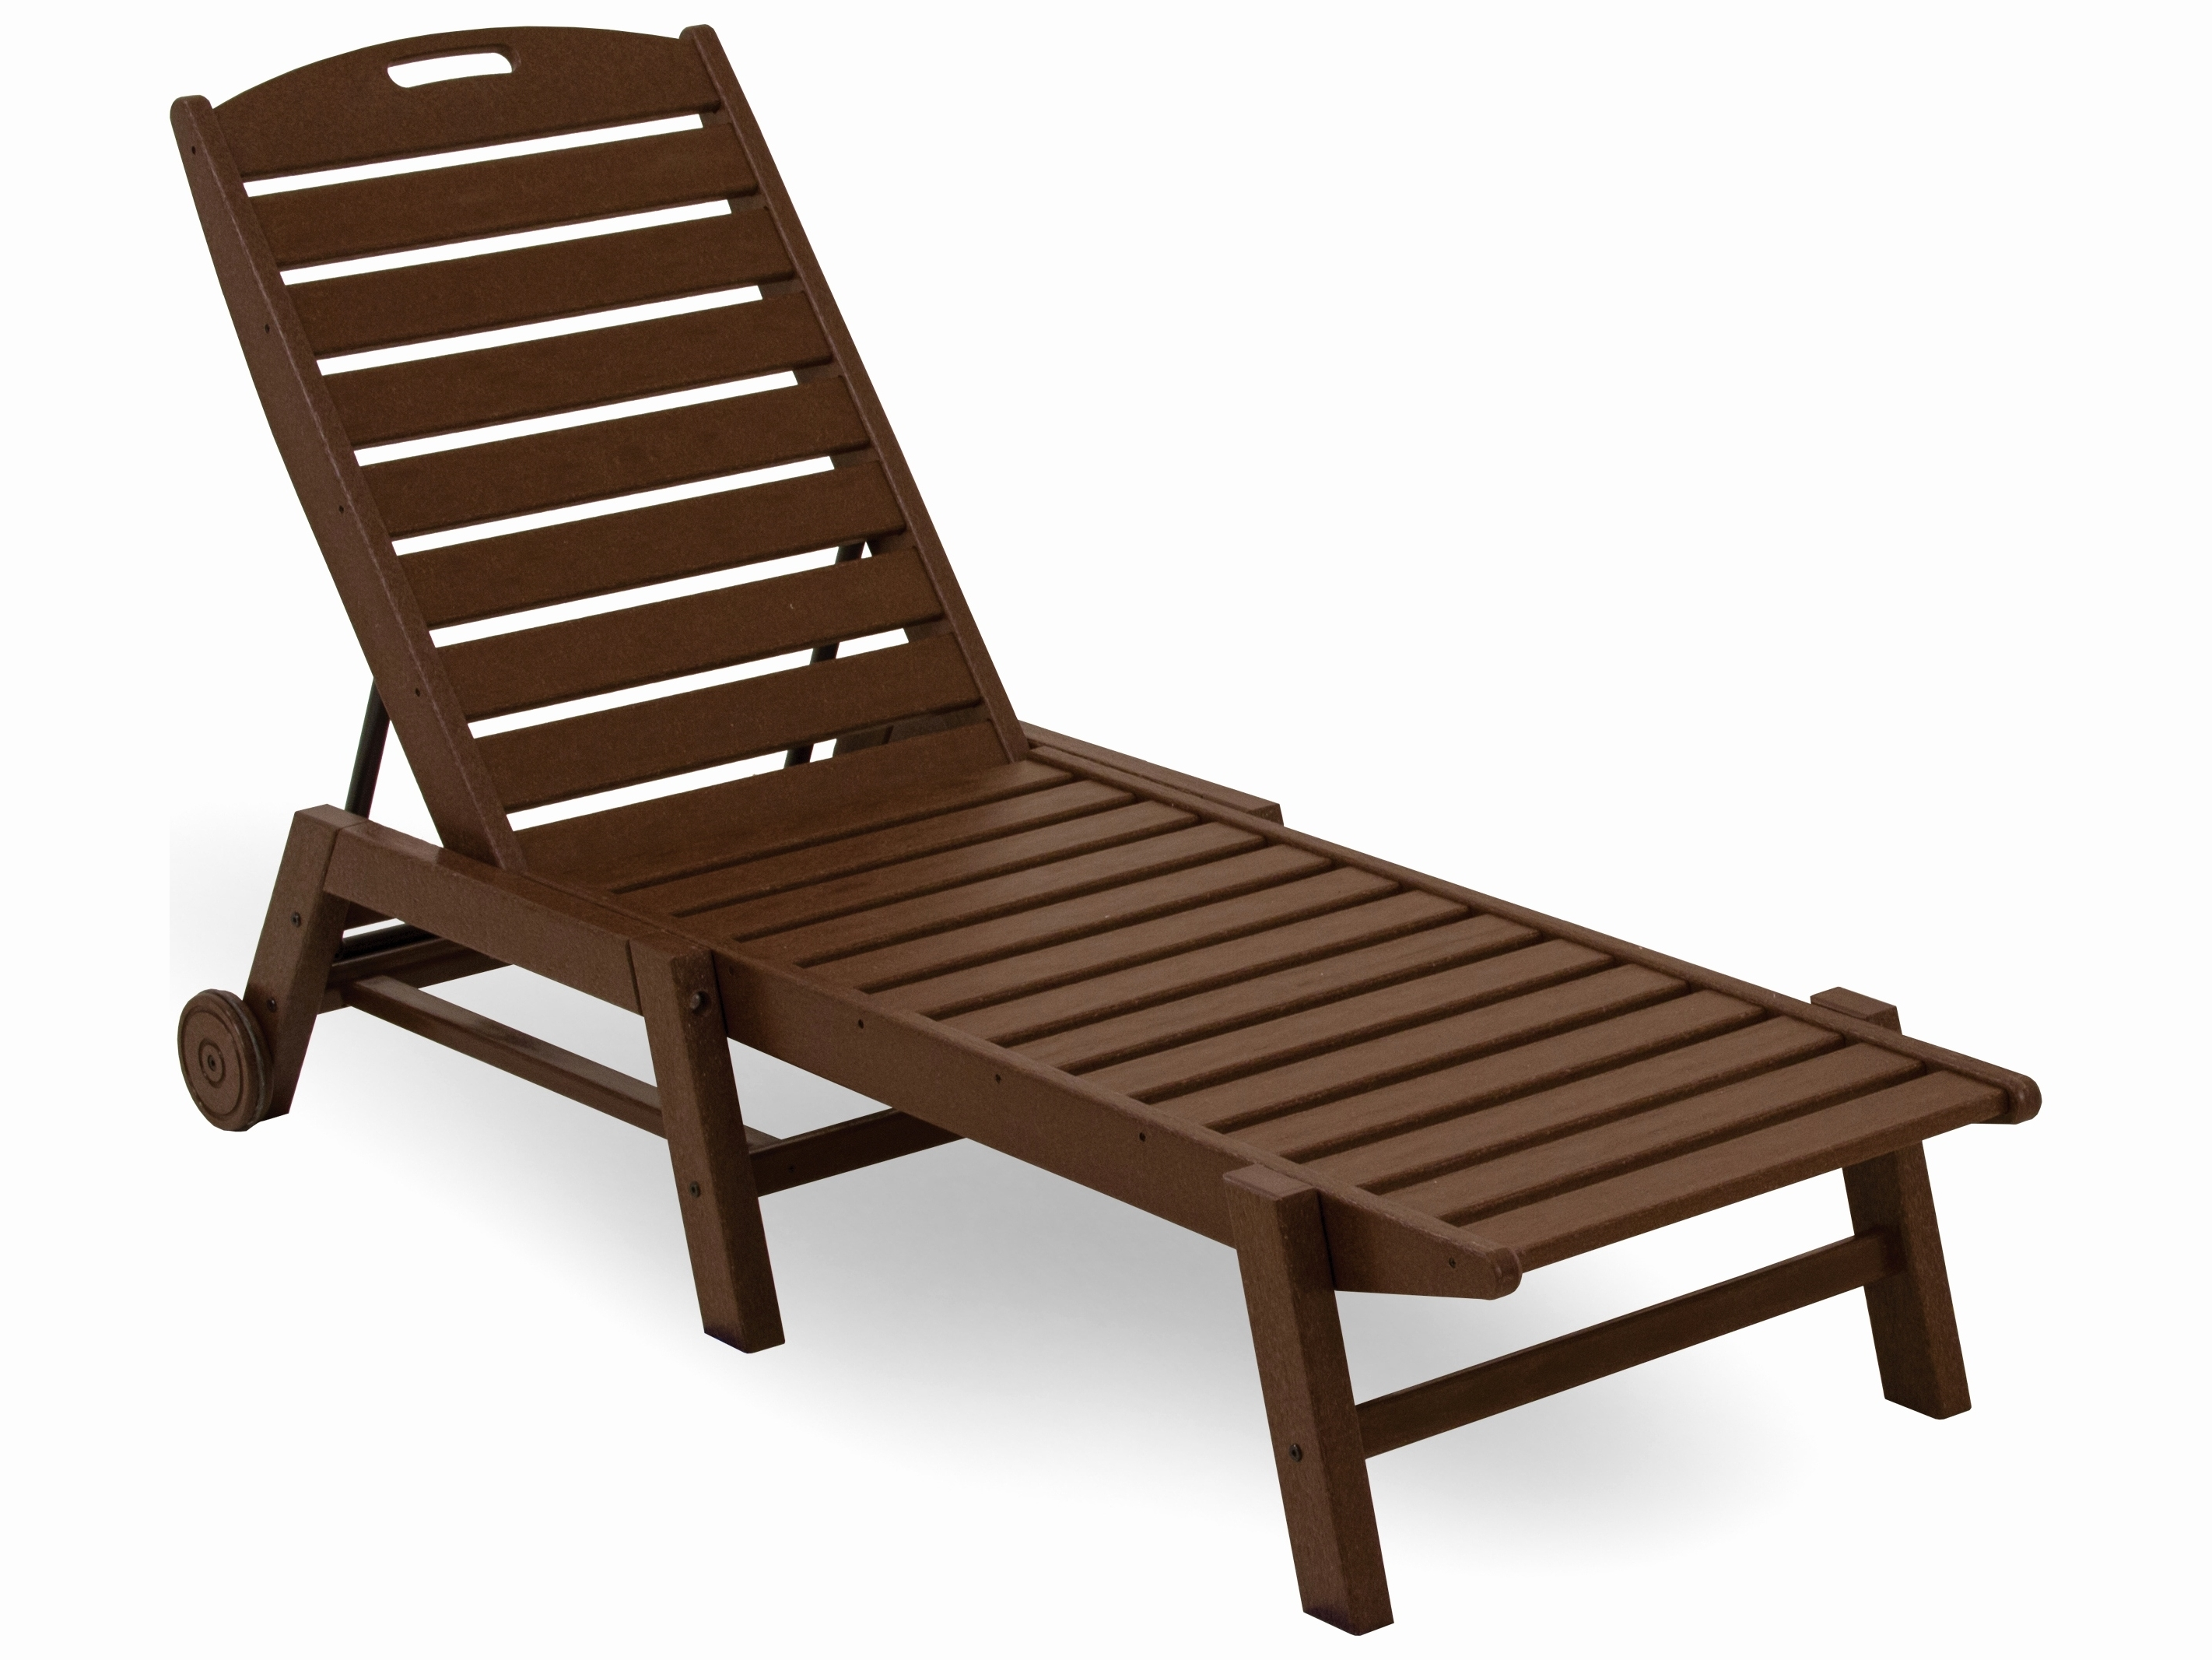 Outdoor Chaise Lounge 15 Collection Of Pvc Outdoor Chaise Lounge Chairs